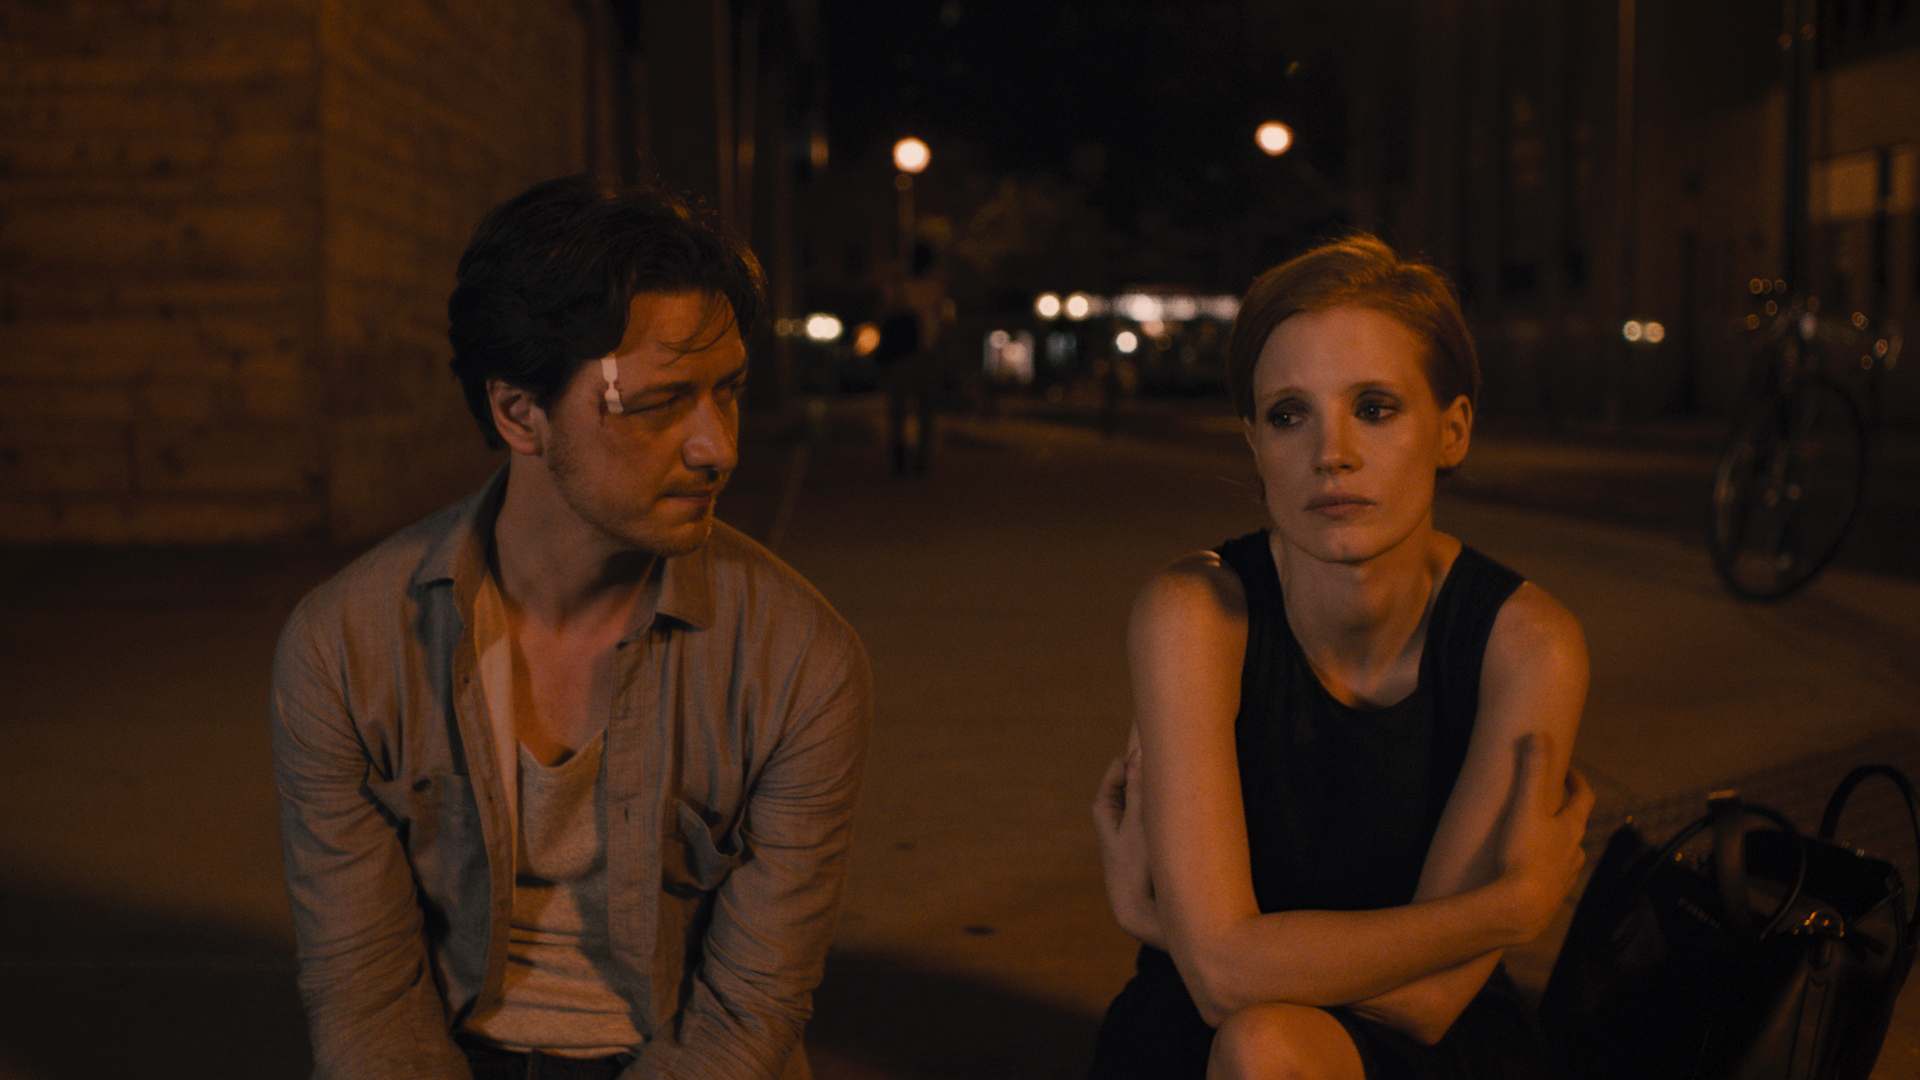 """James McAvoy and Jessica Chastain star in """"The Disappearance of Eleanor Rigby,"""" directed by Ned Benson."""